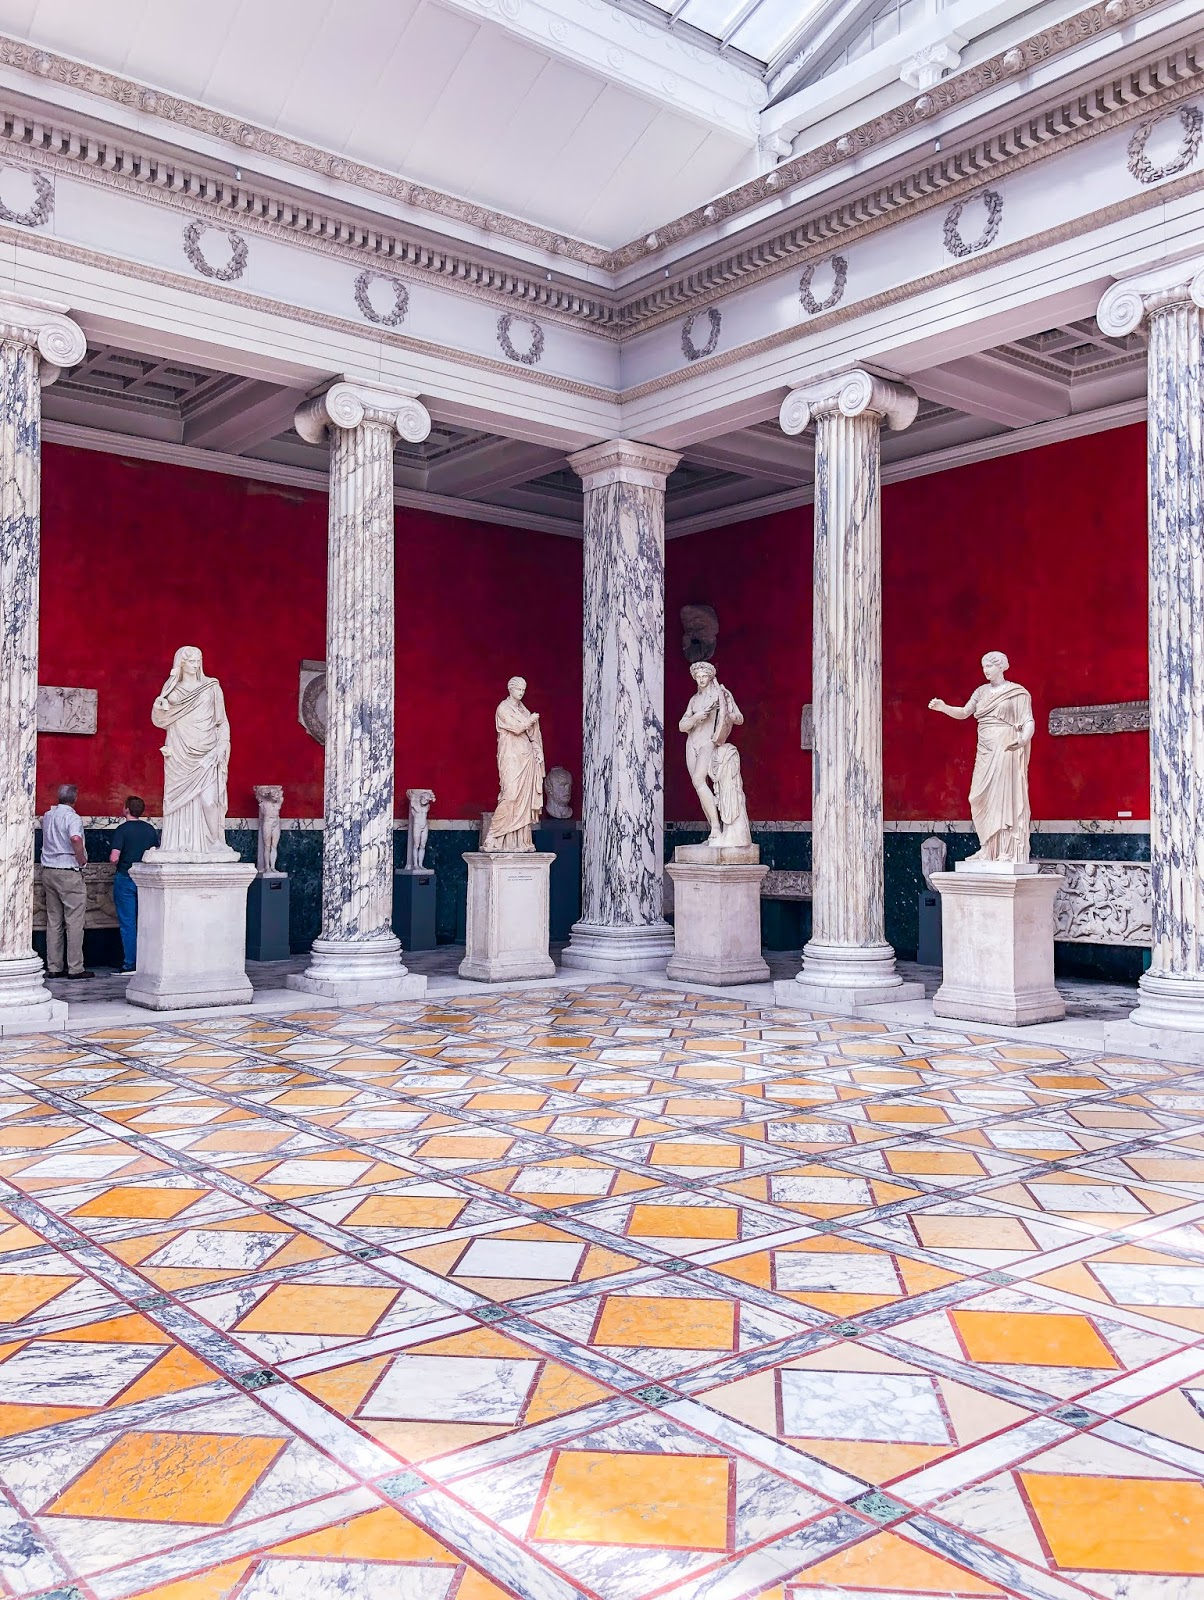 sculptures lining marble room in ny Carlsberg glyptotek gallery in Copenhagen